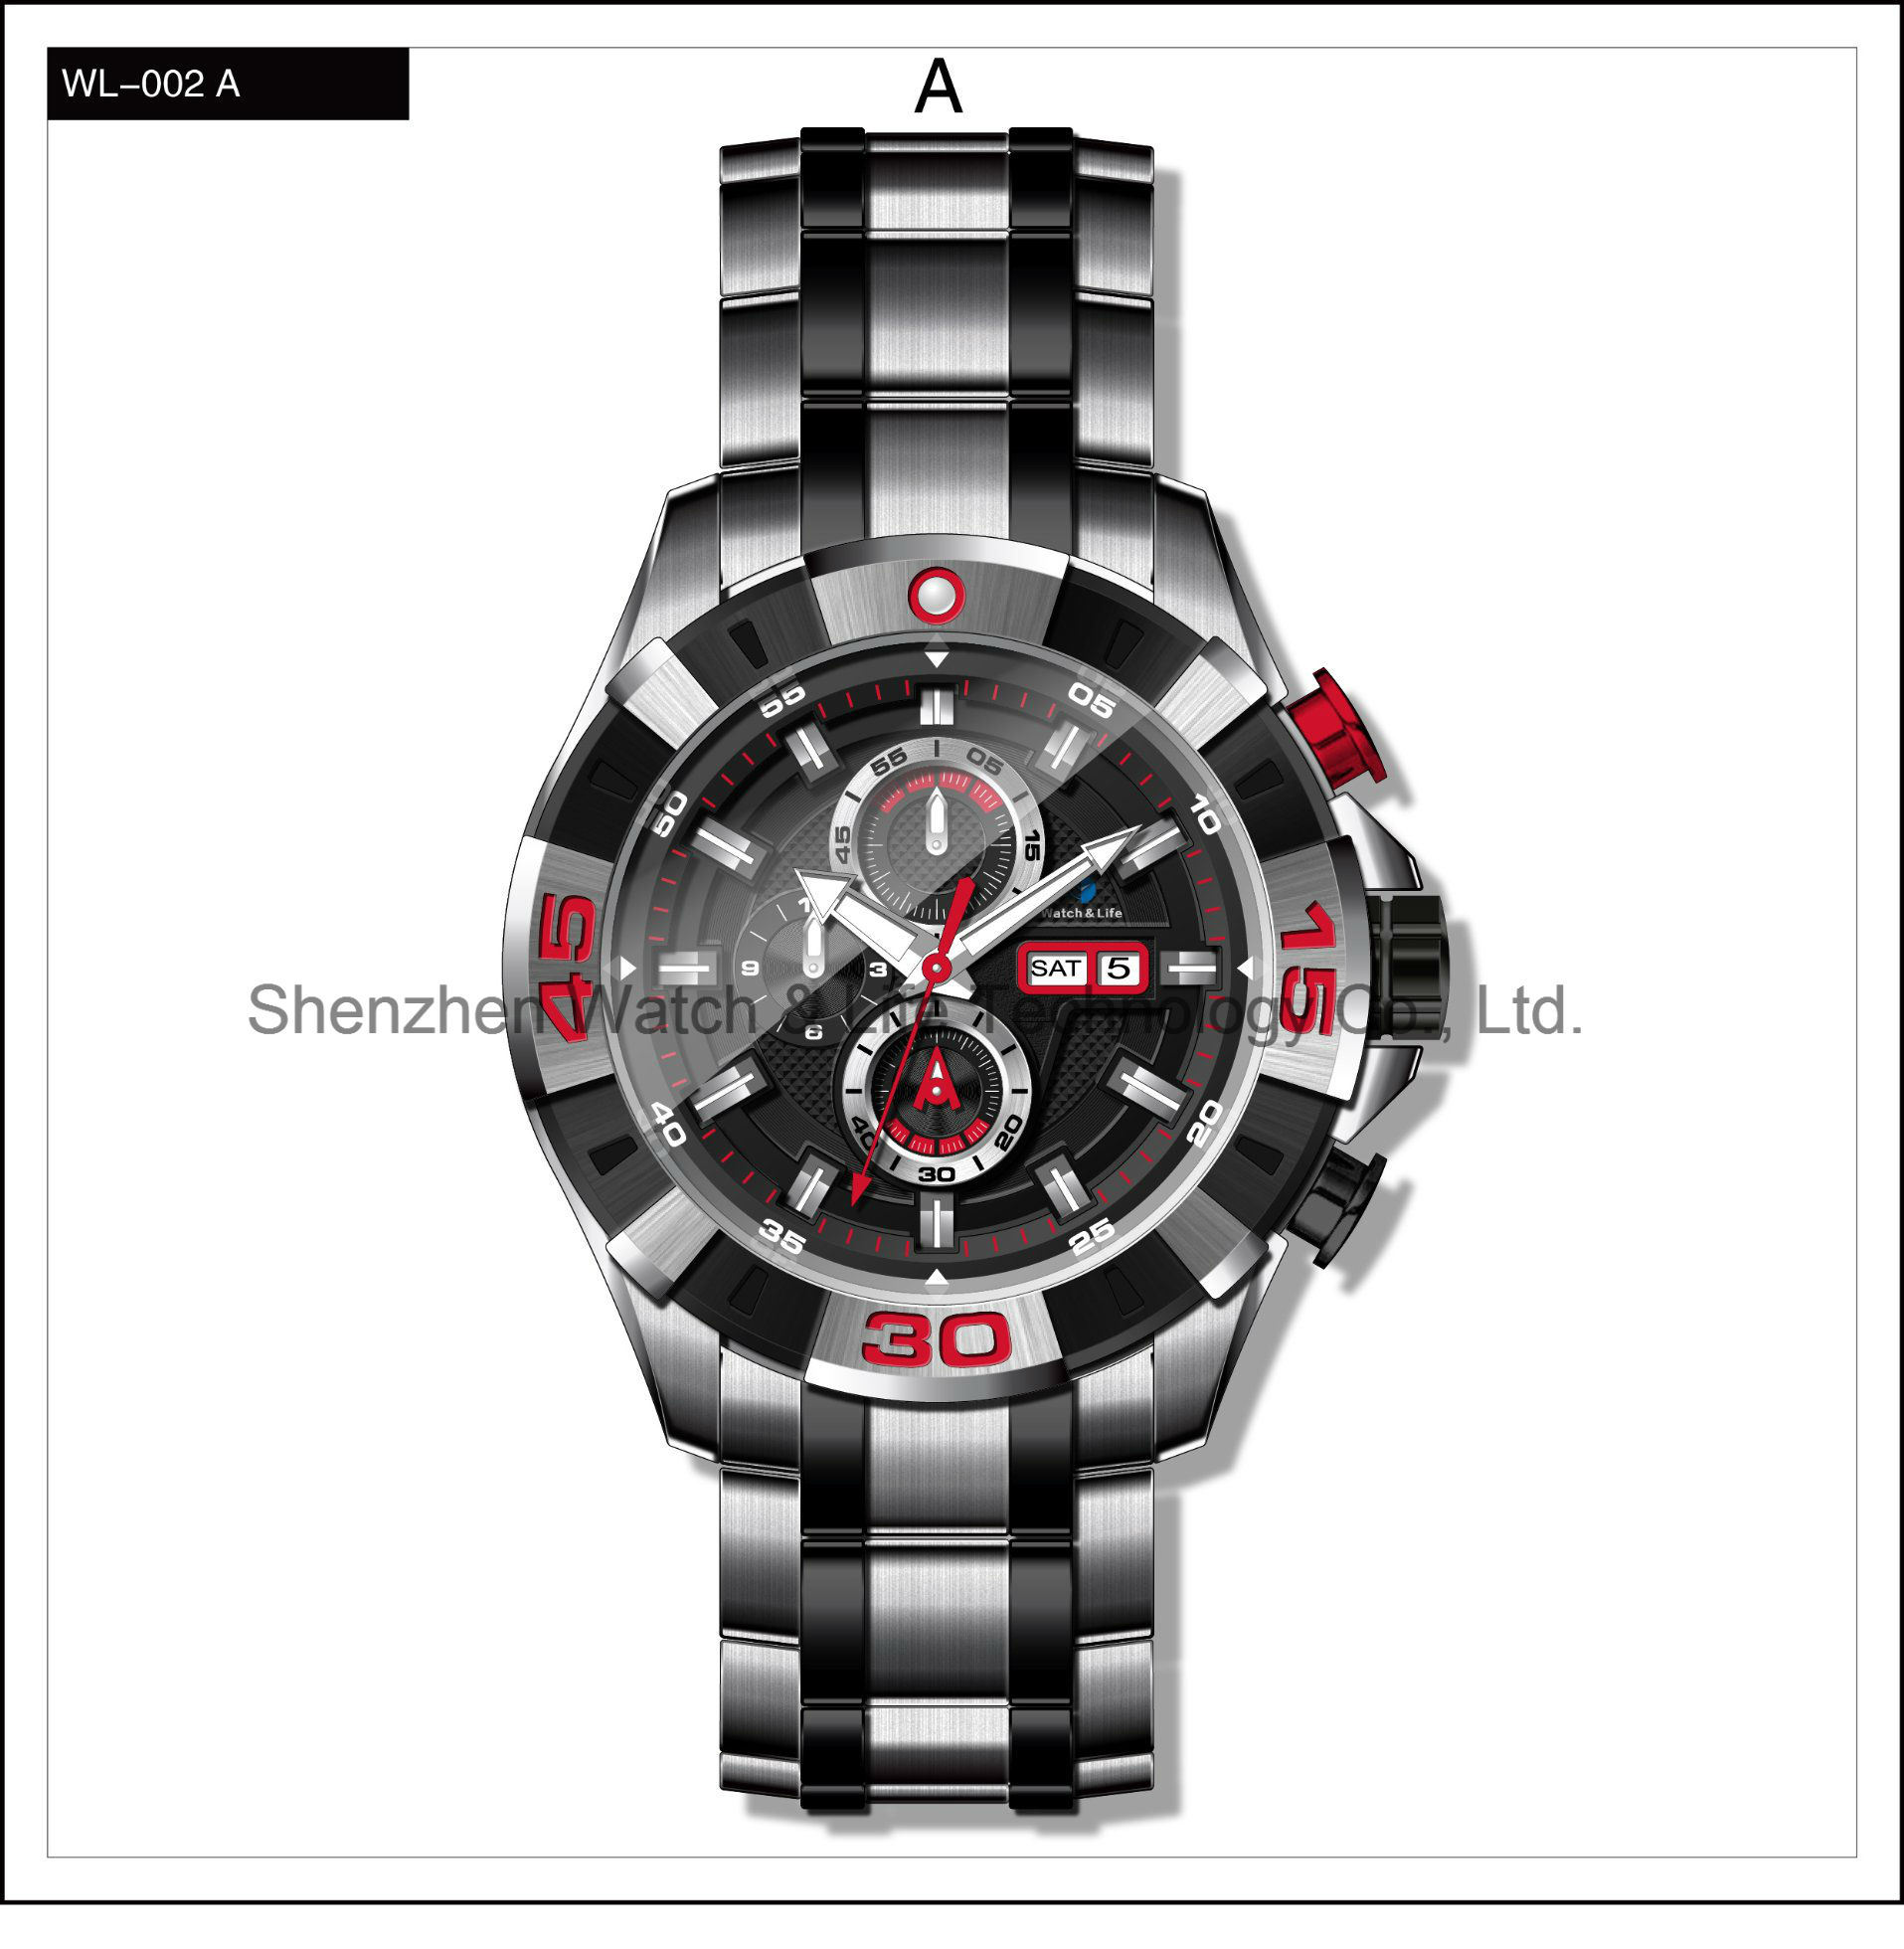 Stainless Steel High Quality Sport Men′s Automatic Watches Wrist Watch